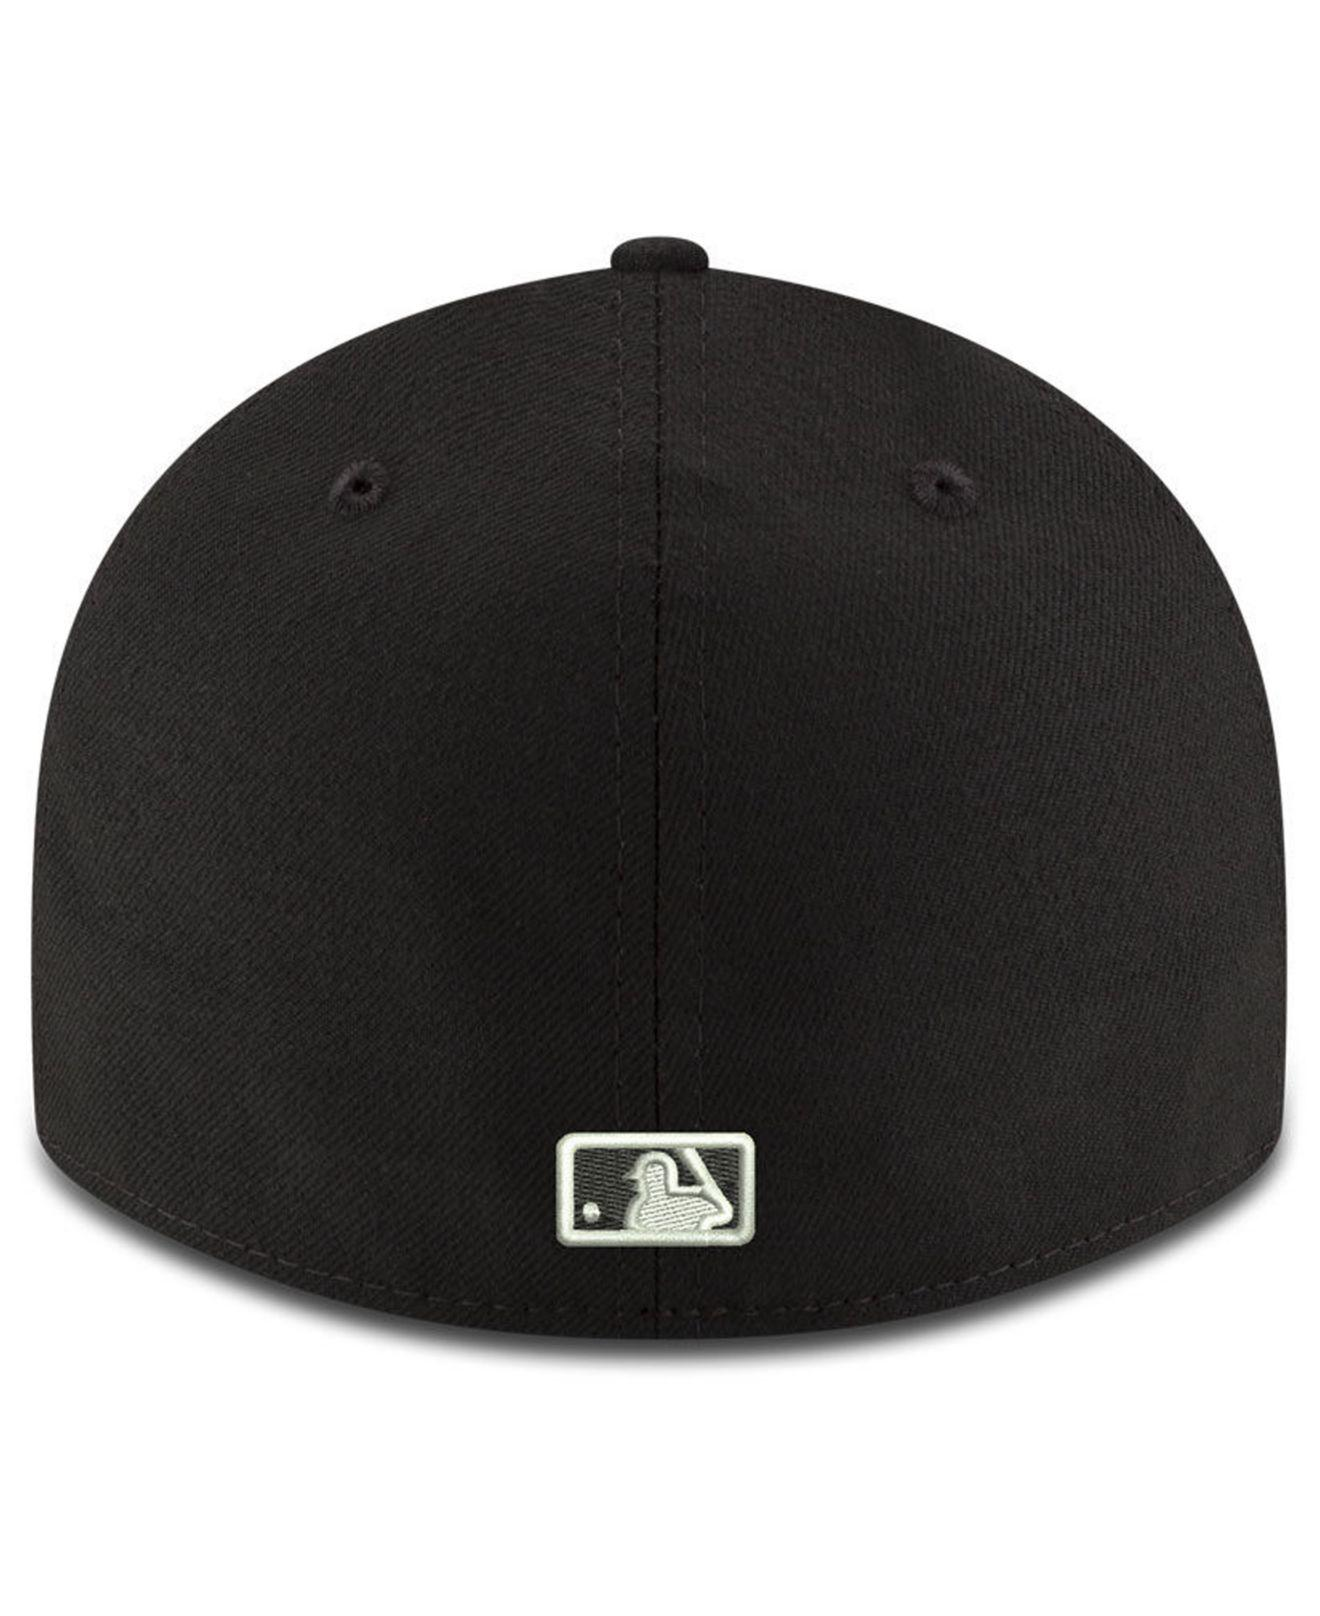 Lyst - KTZ Los Angeles Dodgers Low Profile C-dub 59fifty Fitted Cap ... 60ad72fd74e